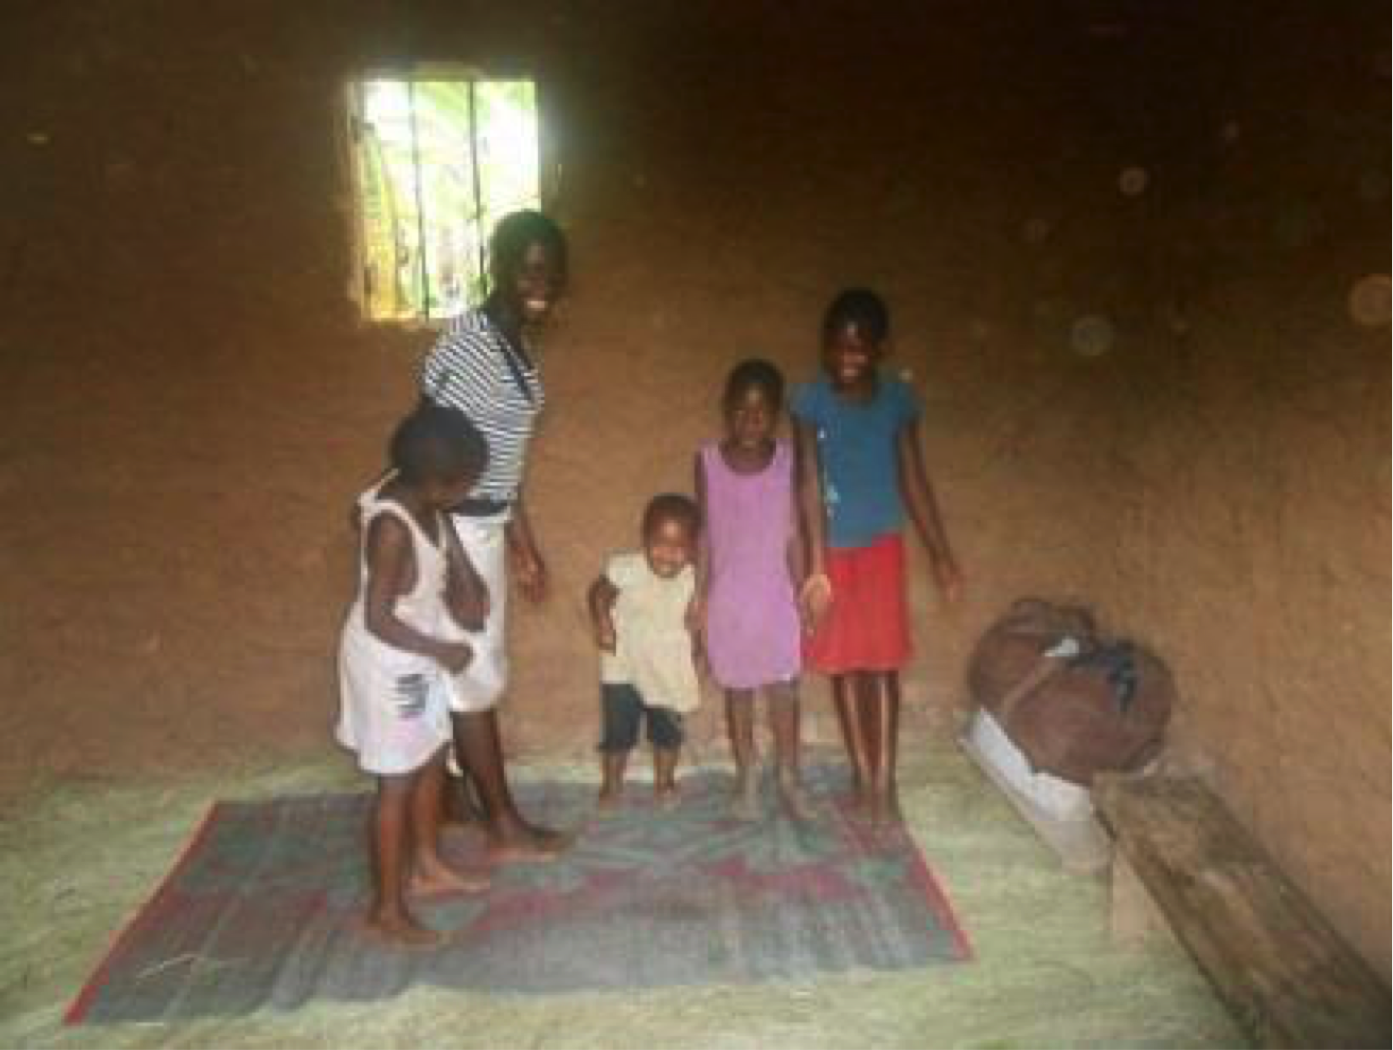 Olivia's grandchildren in their new play and study room